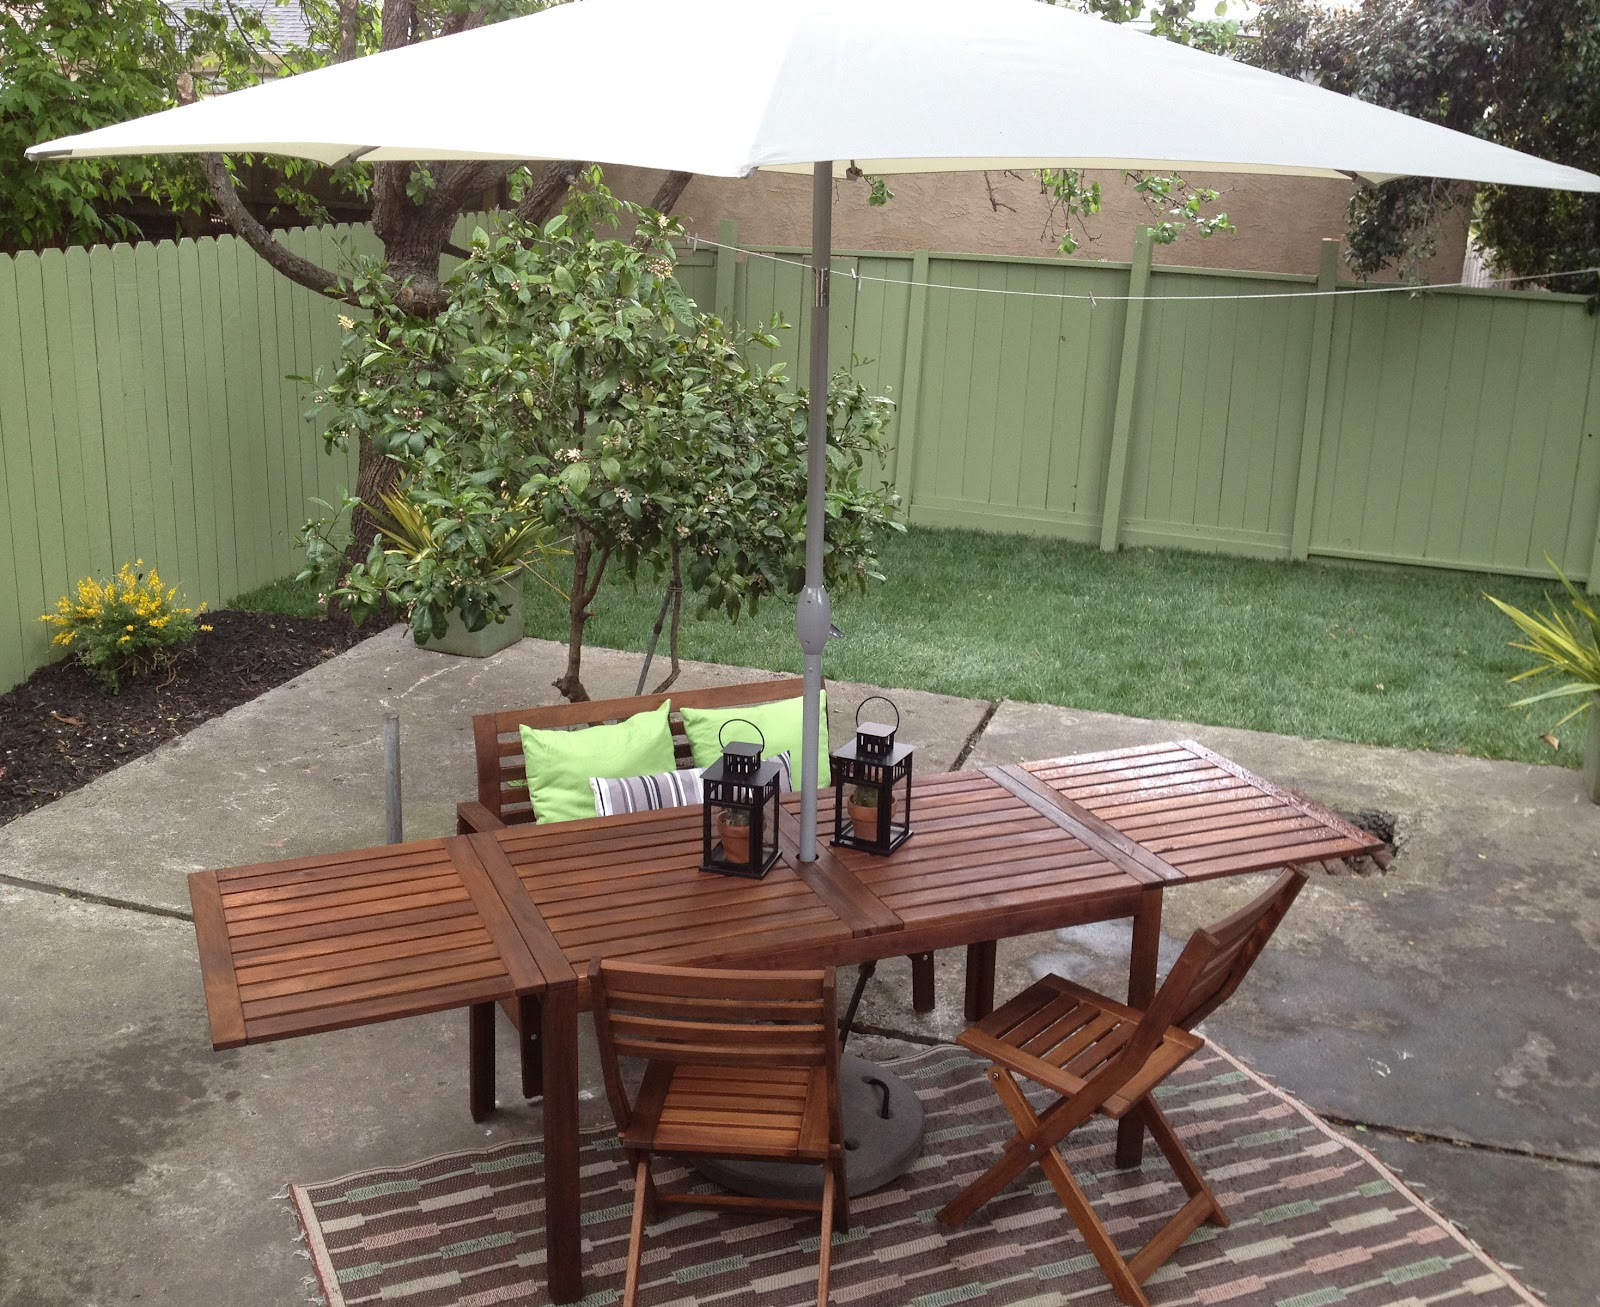 Ikea Patio Umbrella Re mendation